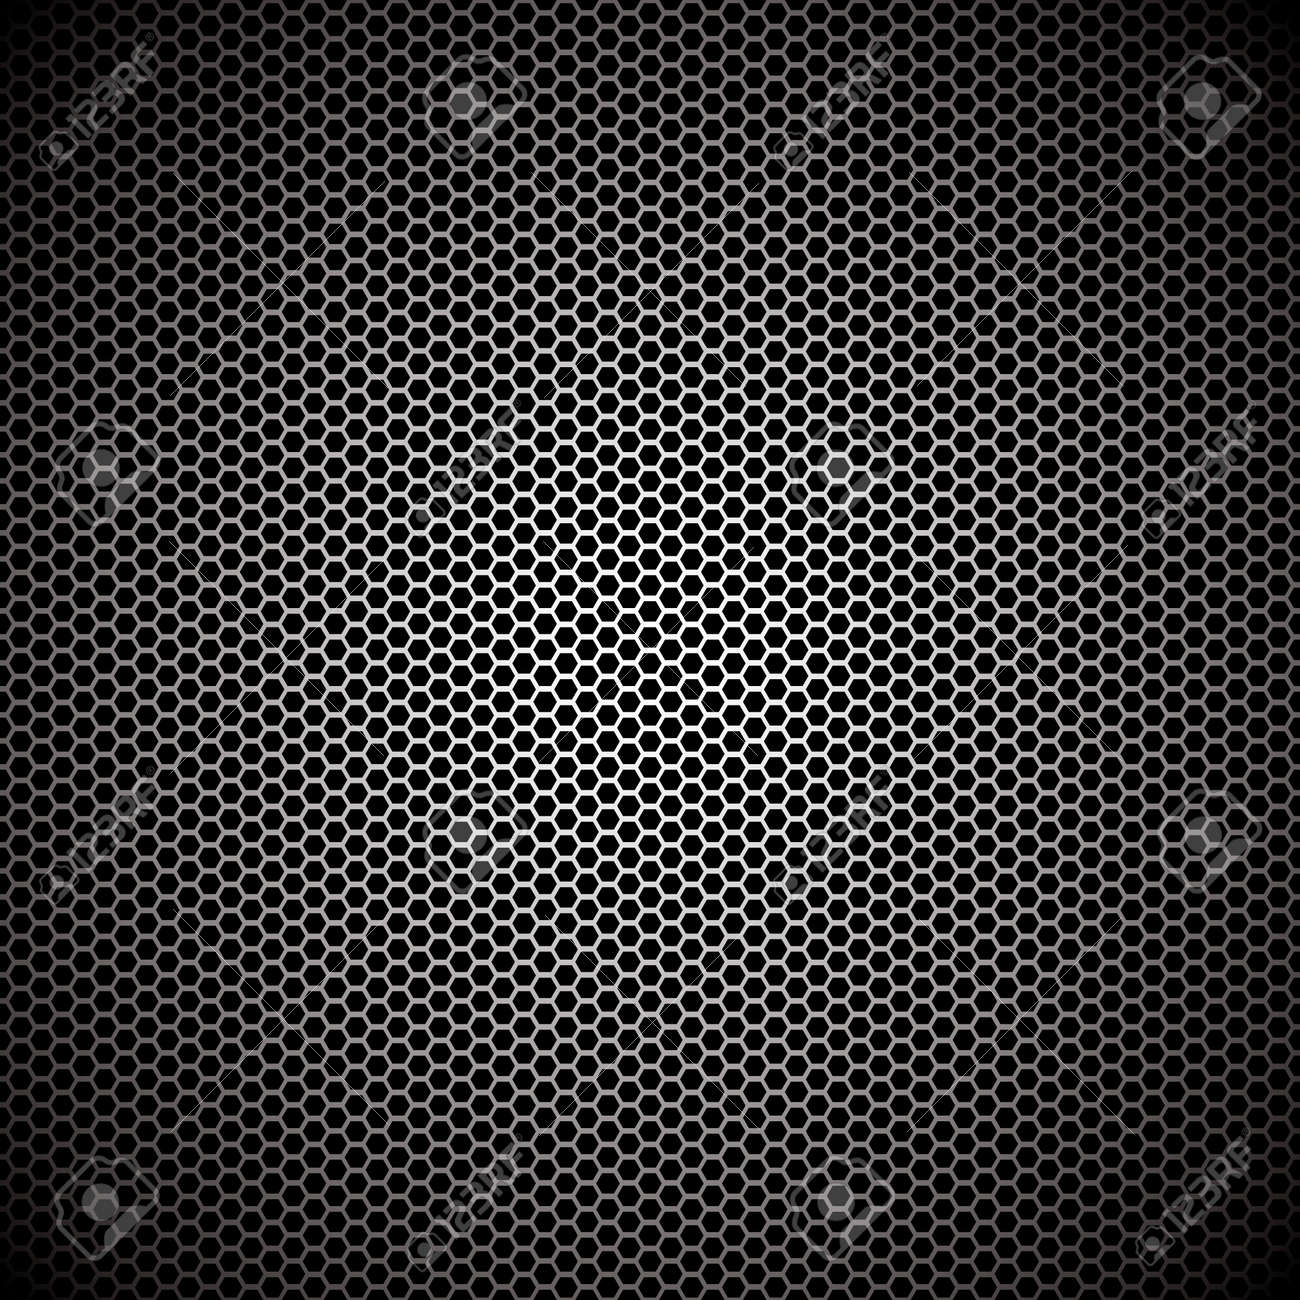 Hexagon metal background with light reflection ideal wallpaper - 7331391